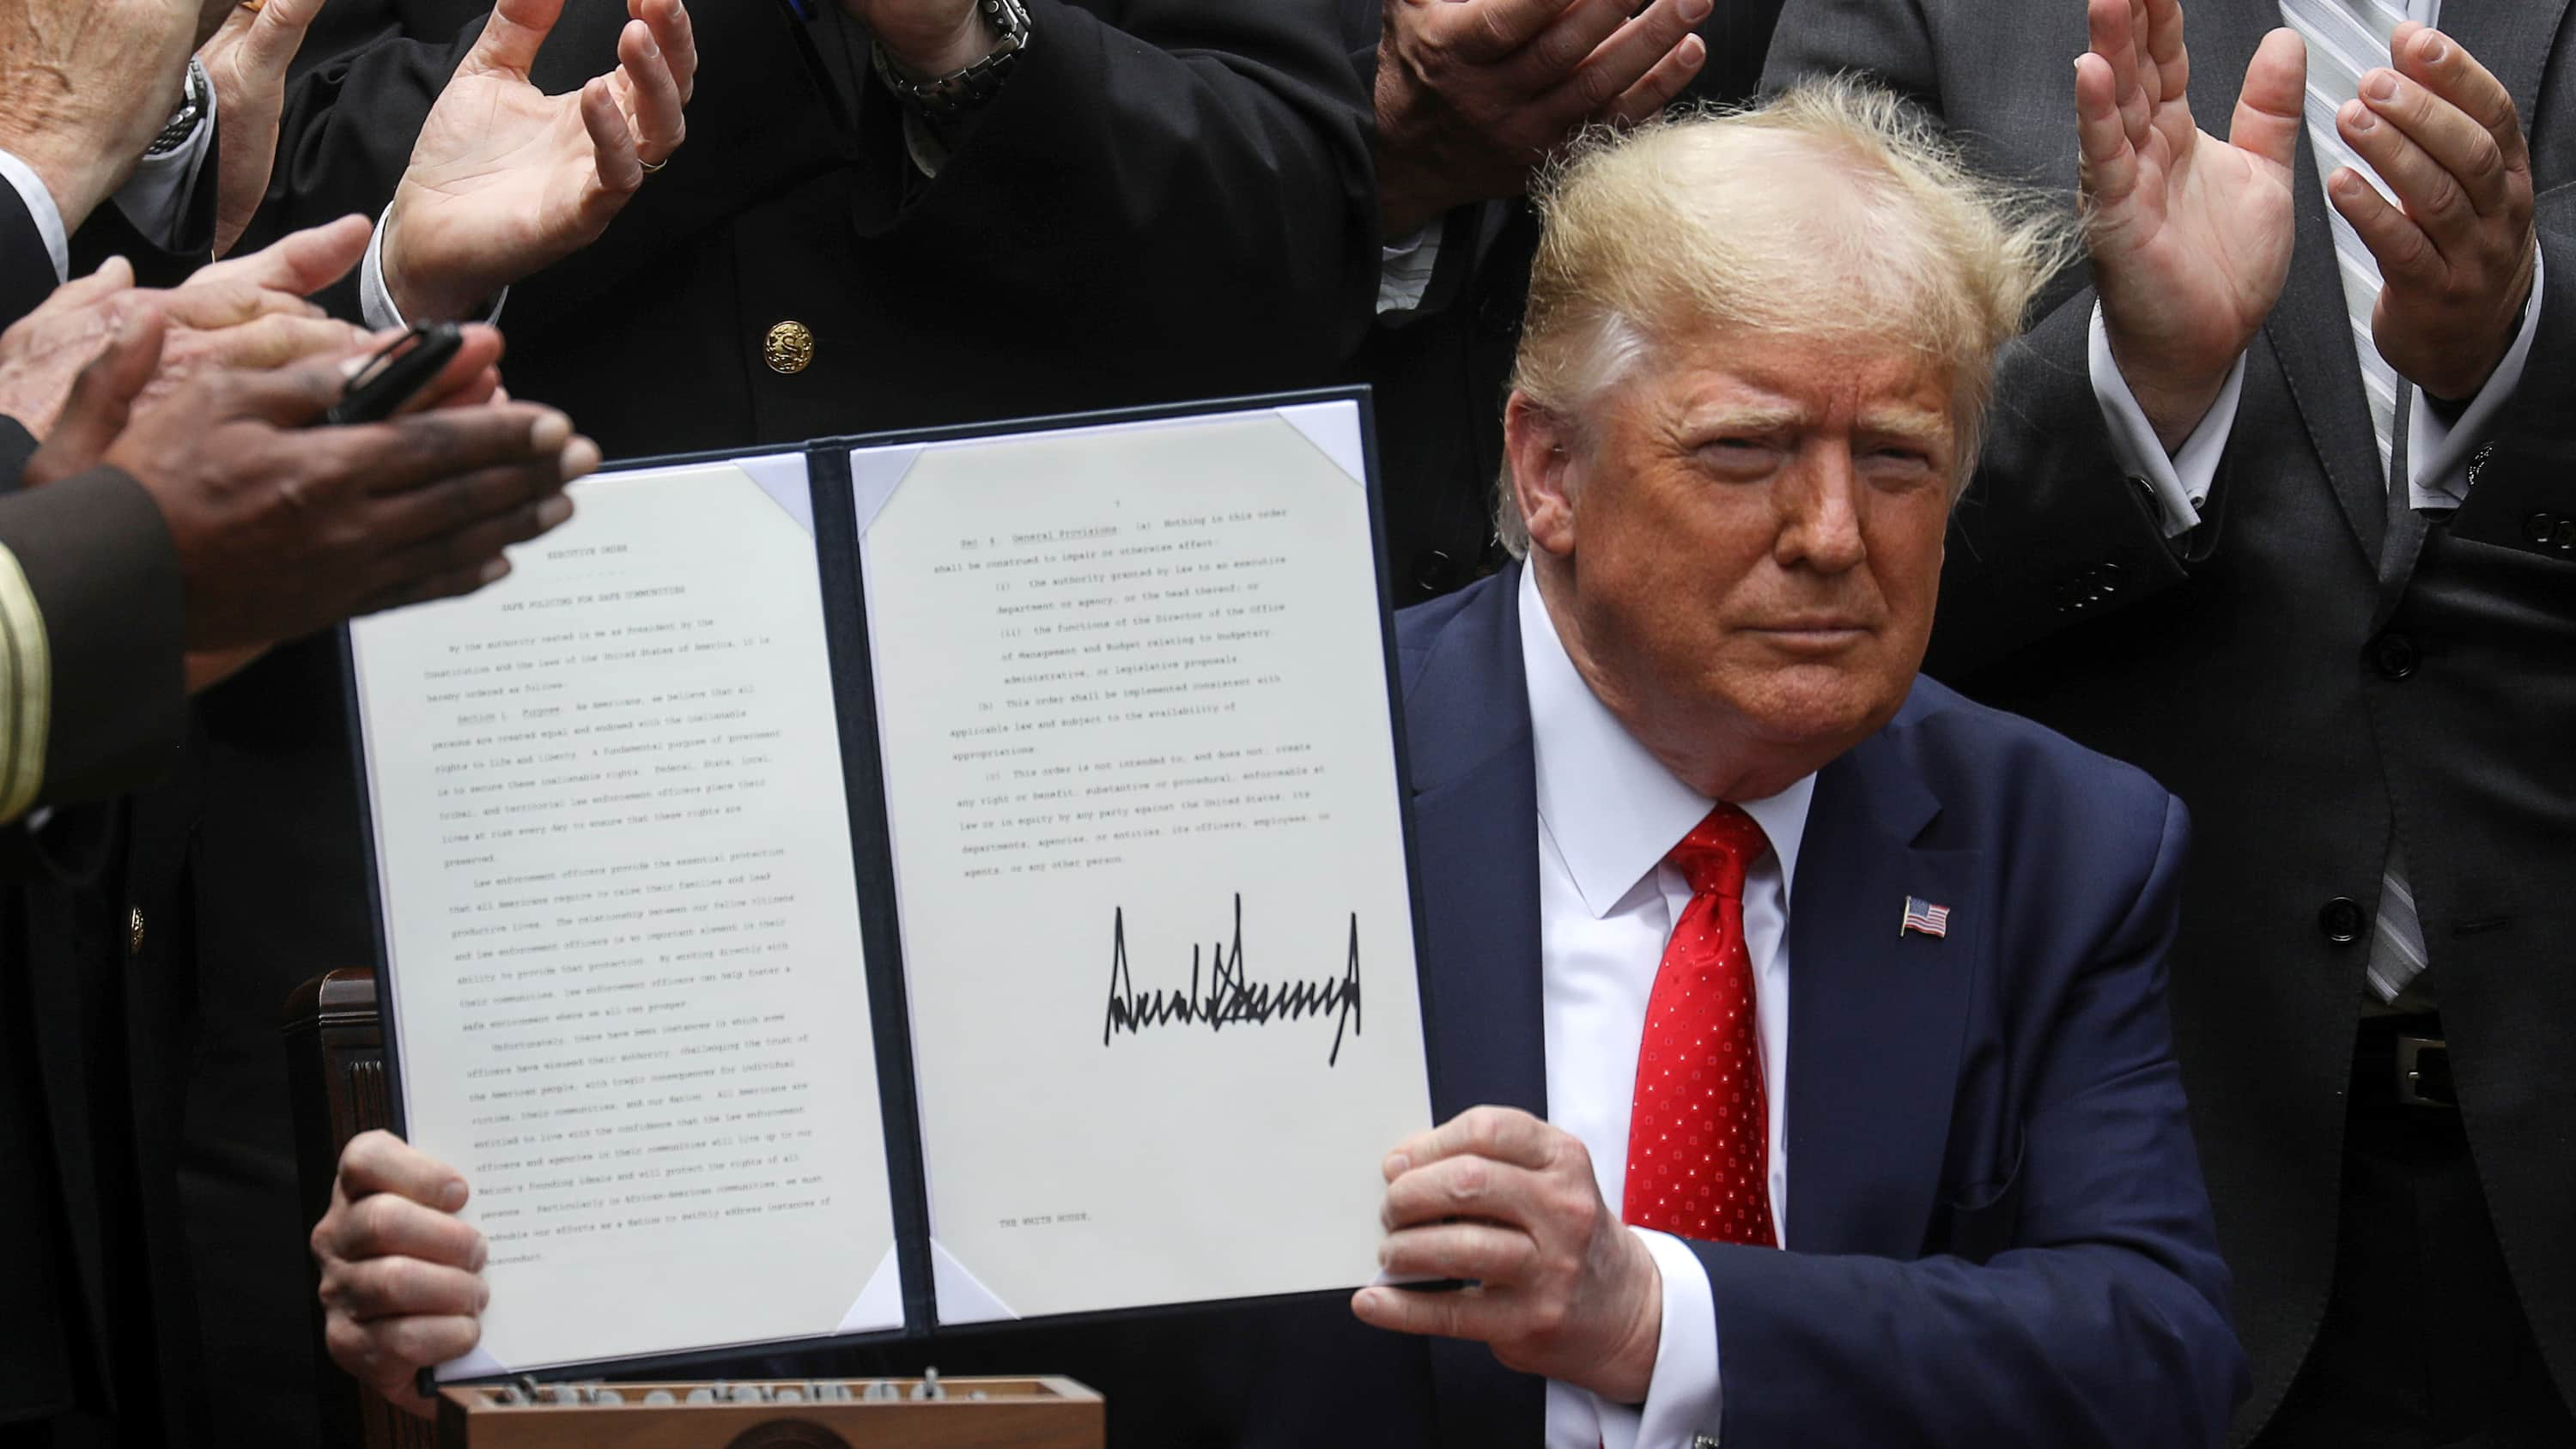 President Donald Trump signed an executive order aimed at tracking misconduct by law enforcers